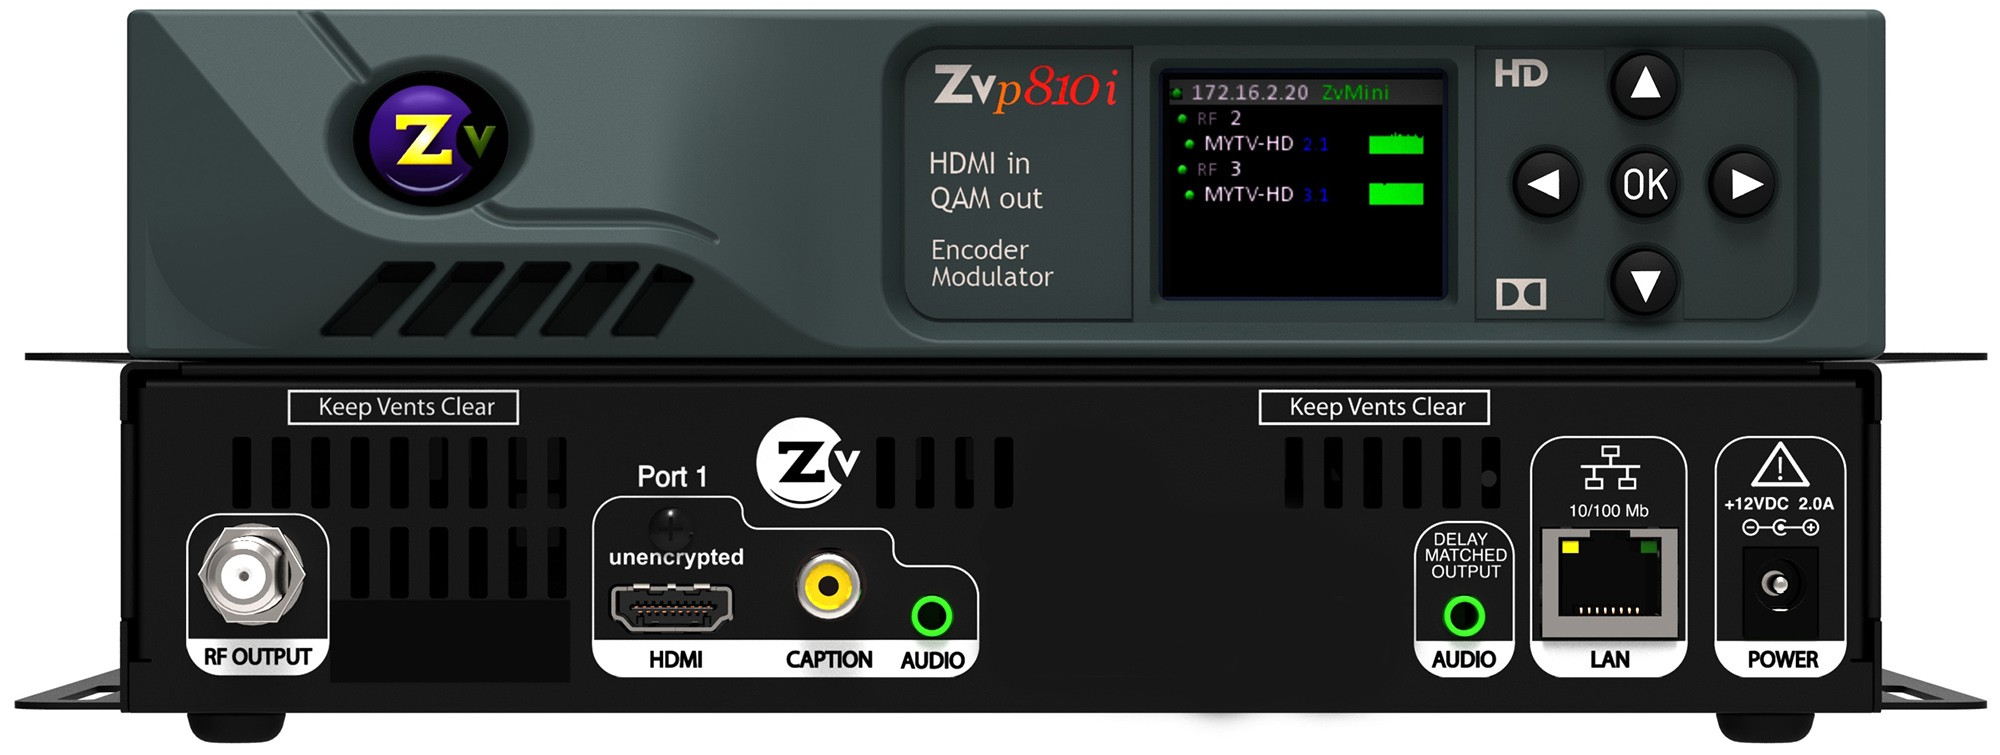 ZvPro 810 HD,Video distribuidor QAM sobre modulador Coaxial 1080 p